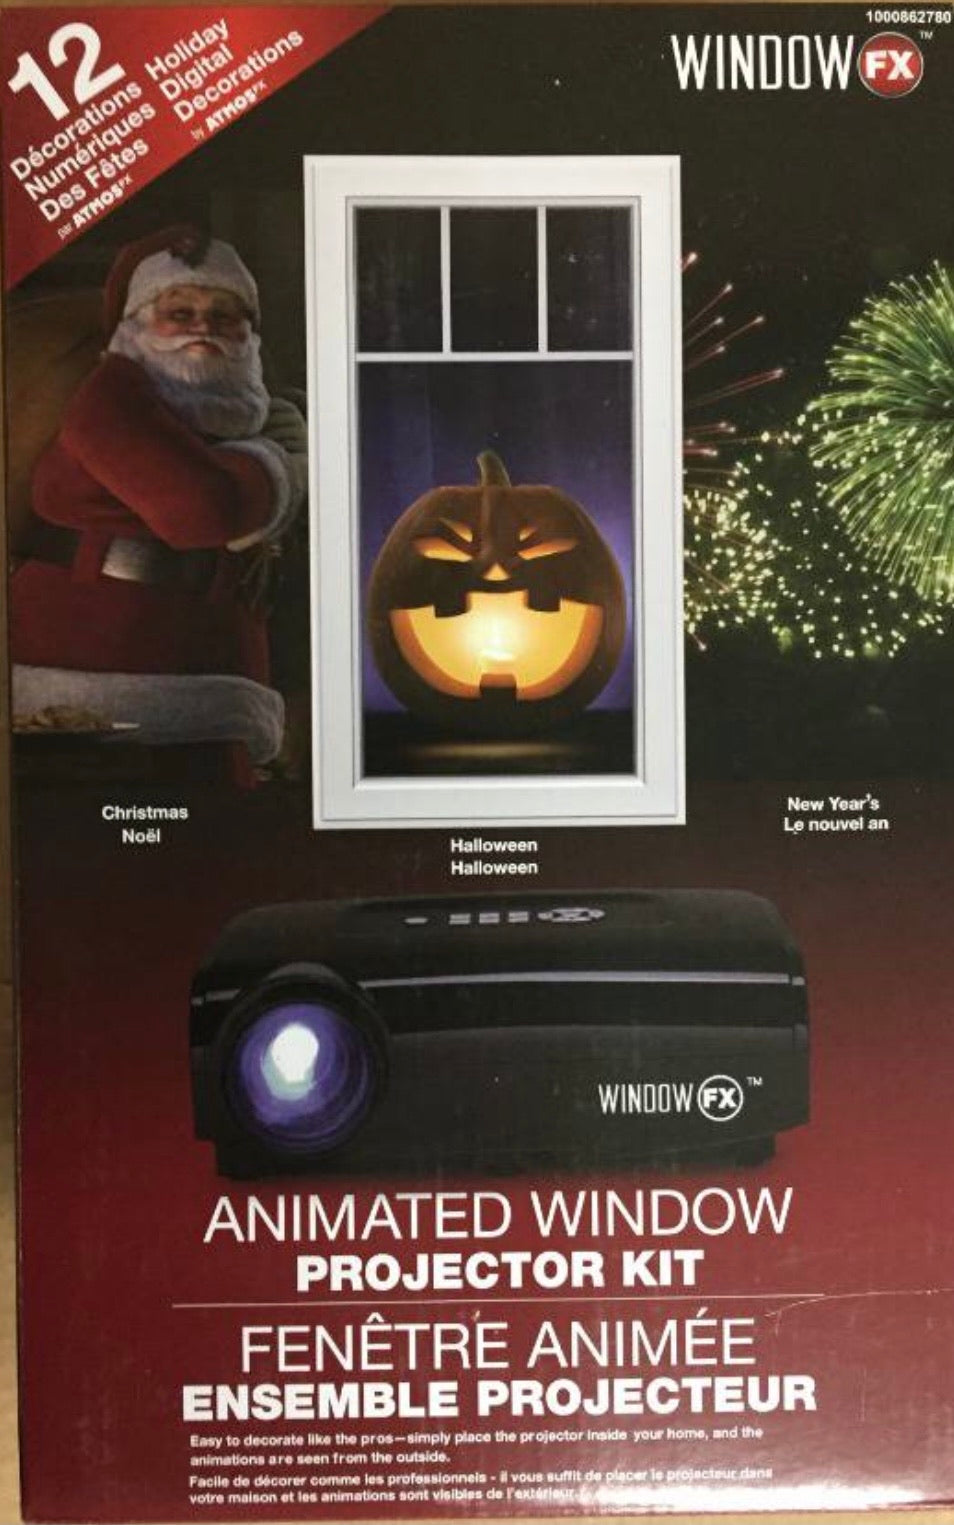 Window FX window projector